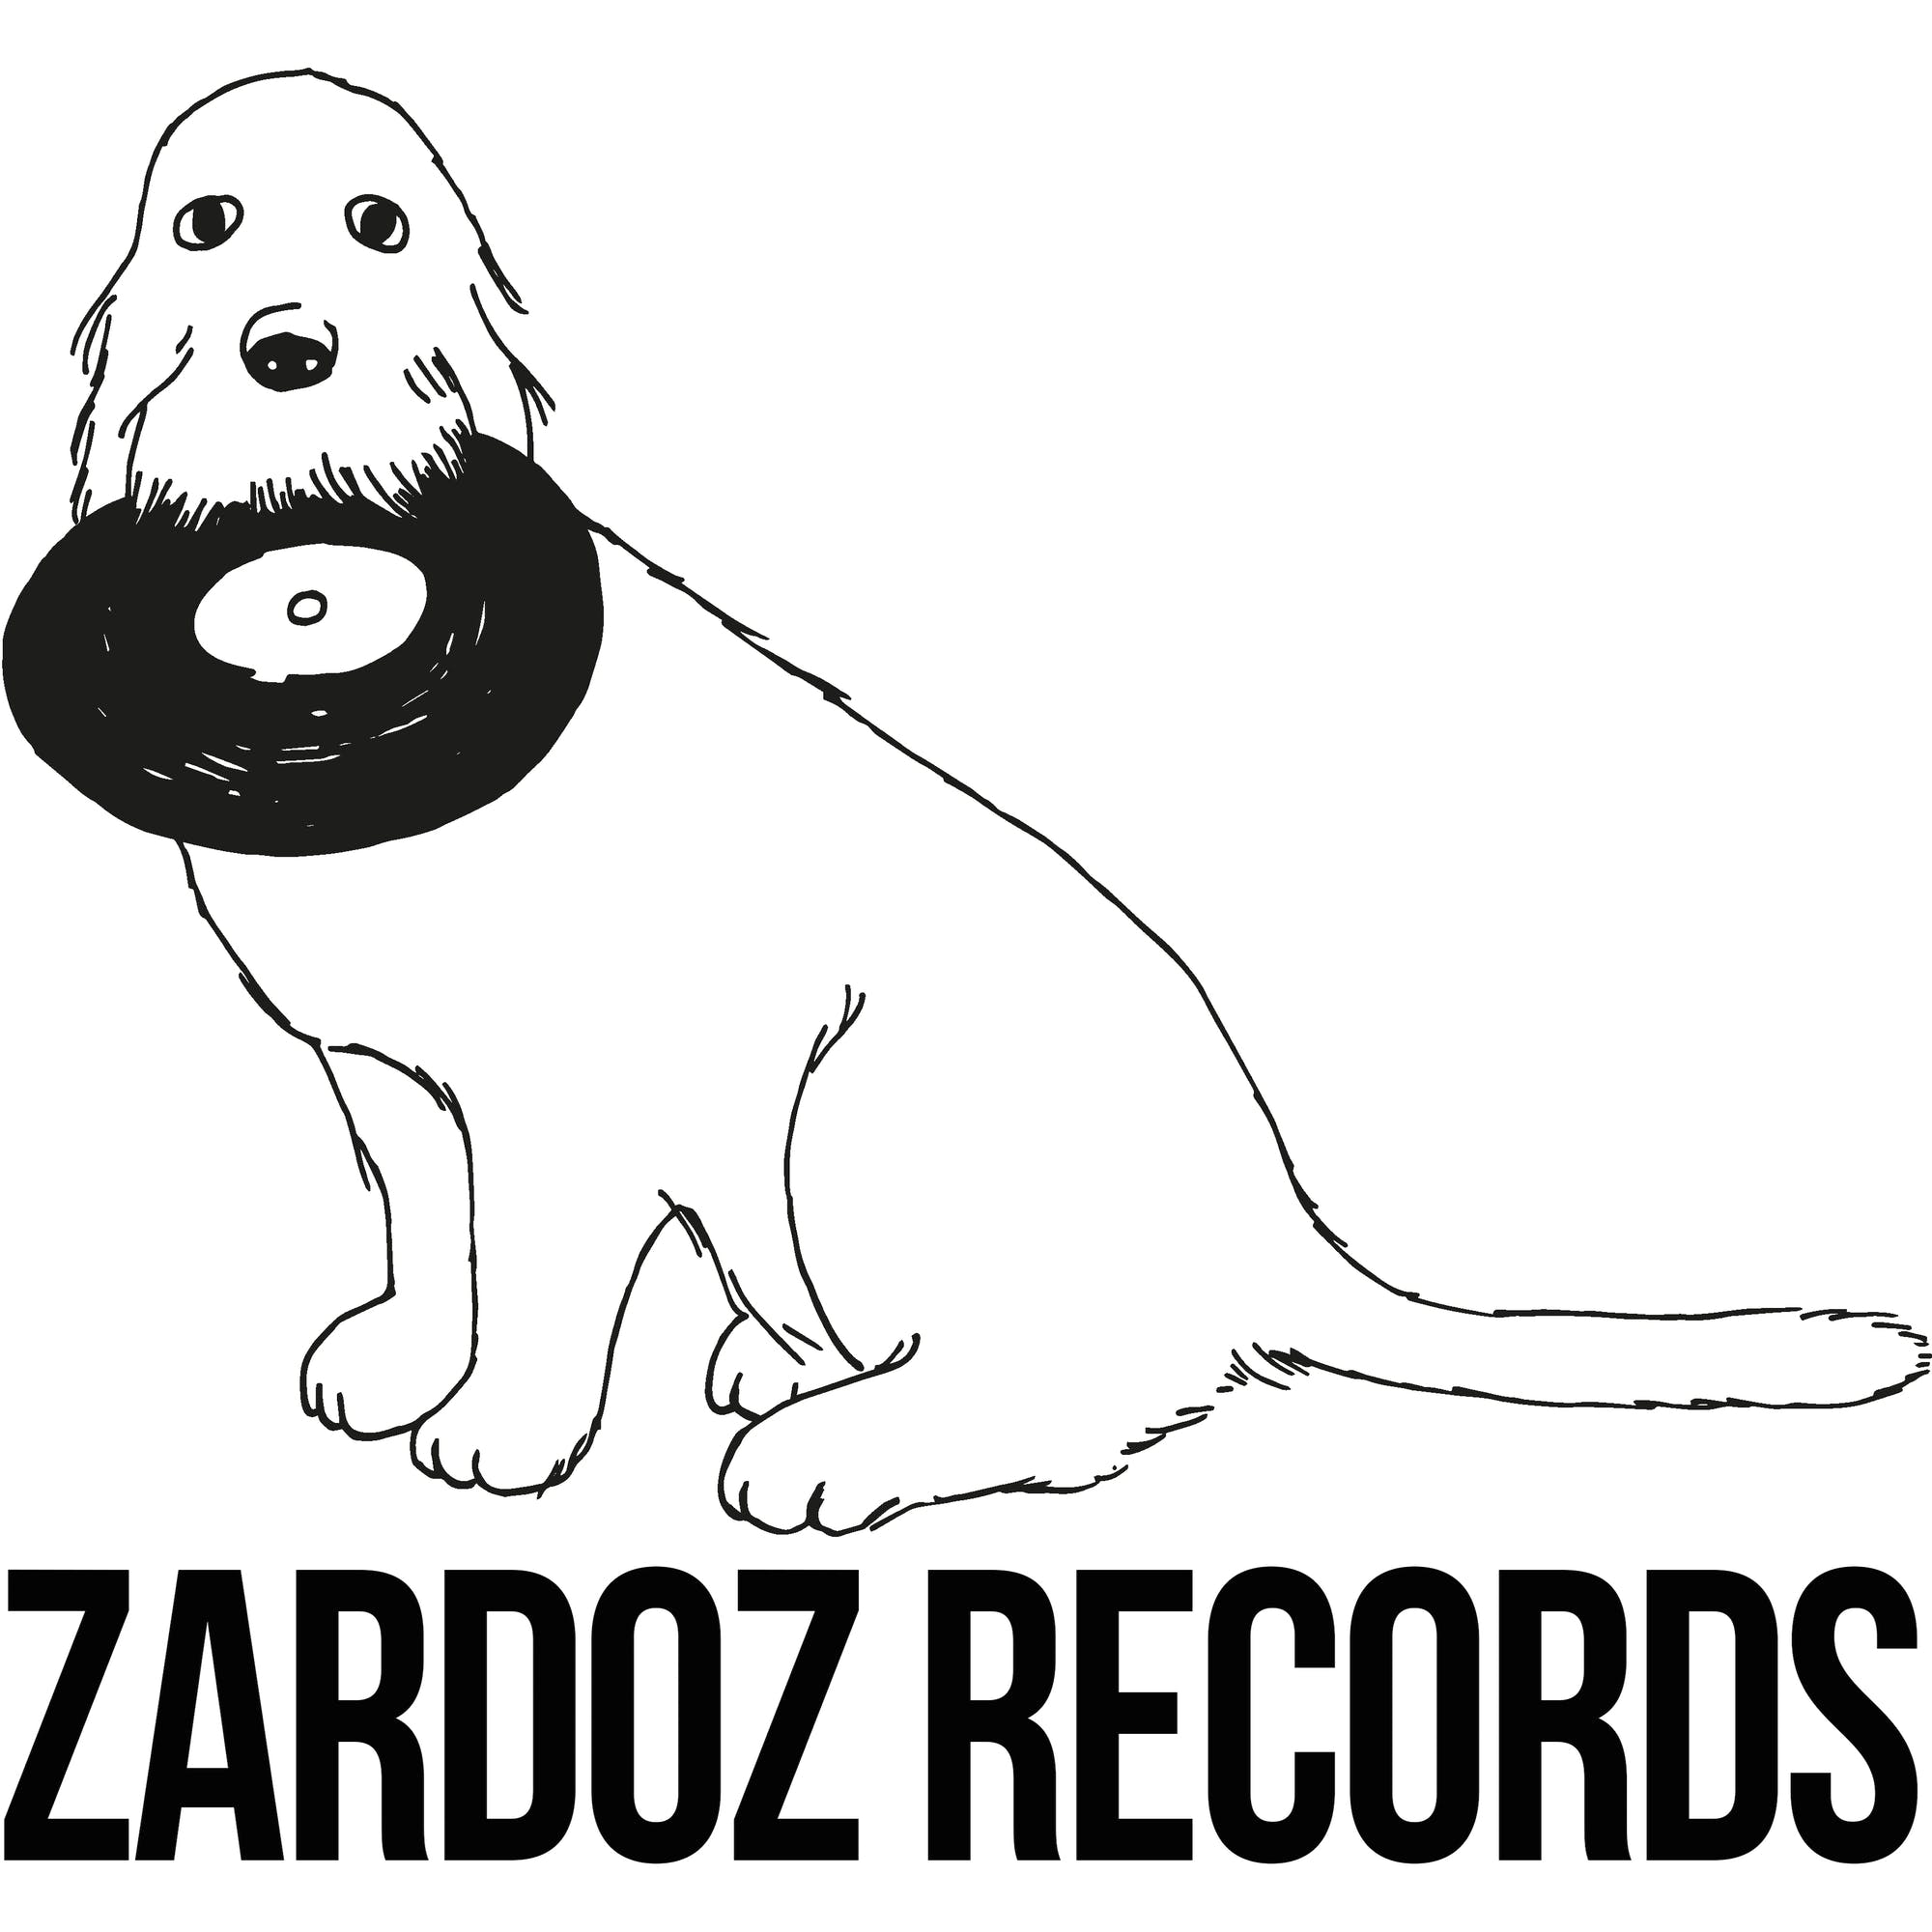 Zardoz Records - Record Store Image